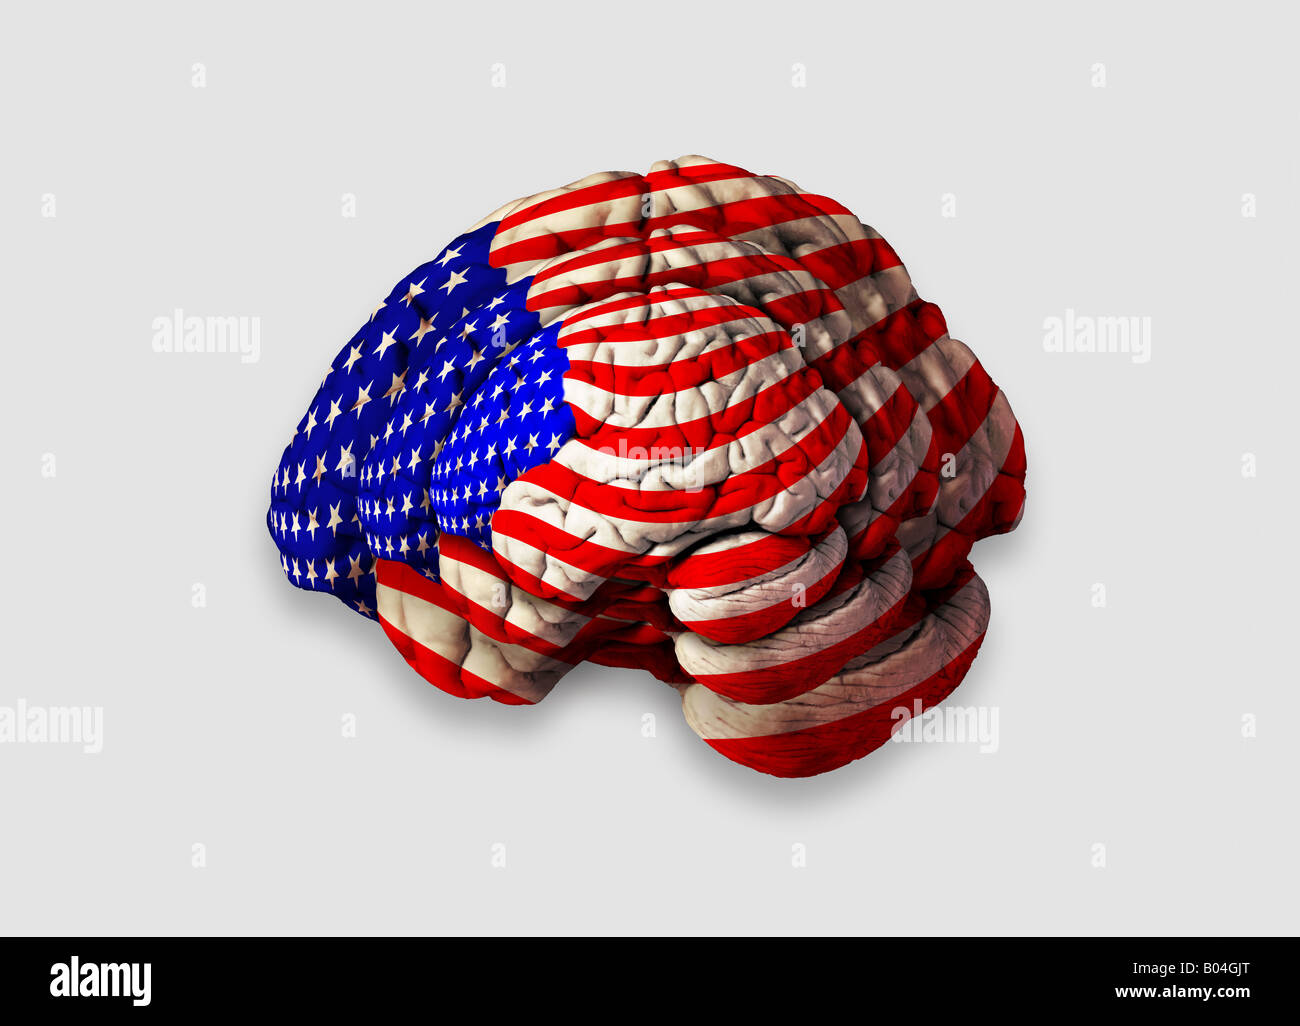 Cut Out Brain American America USA Flag Jasper Johns art style red white and blue stars and stripes nationality Stock Photo